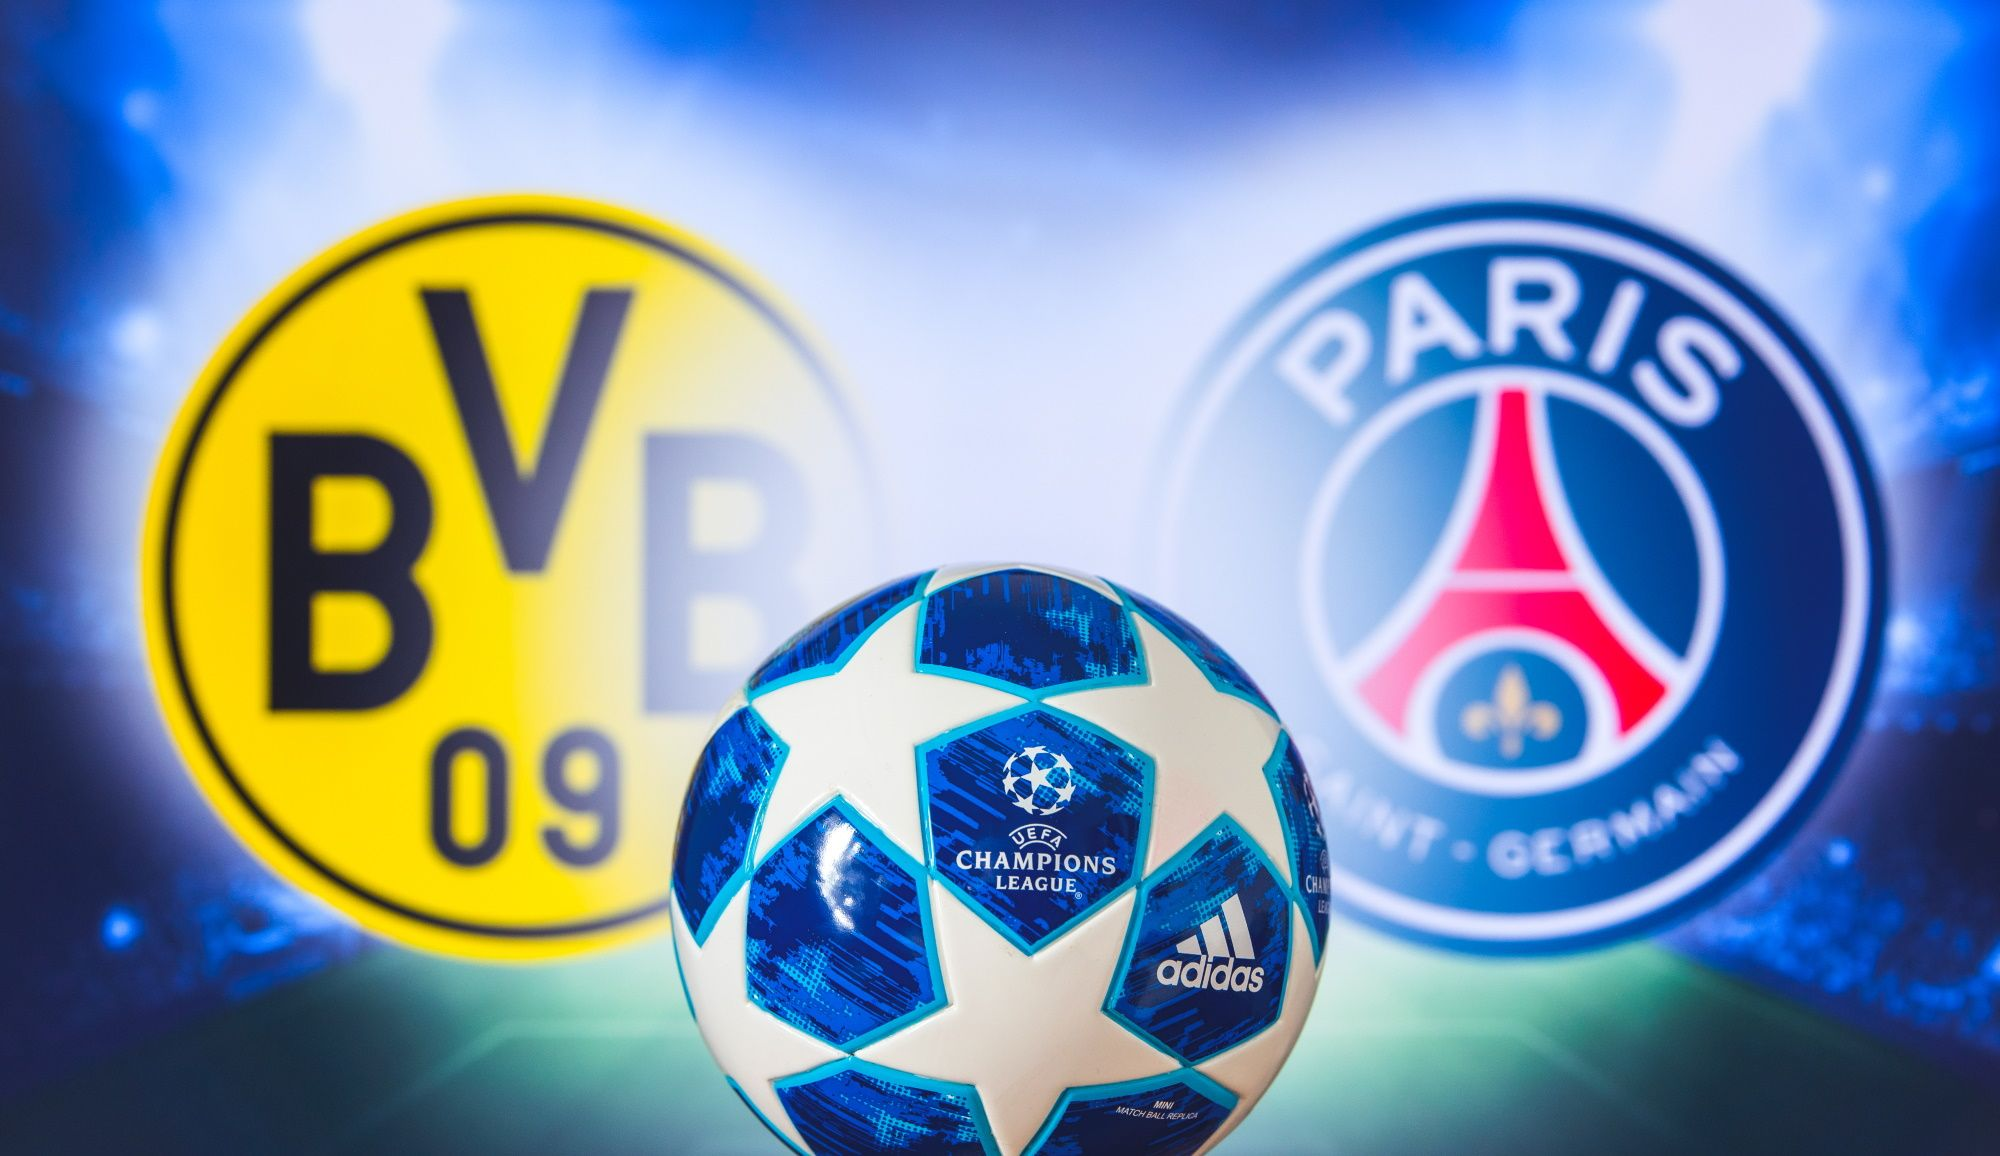 Champions League 1920 live stream how to watch every